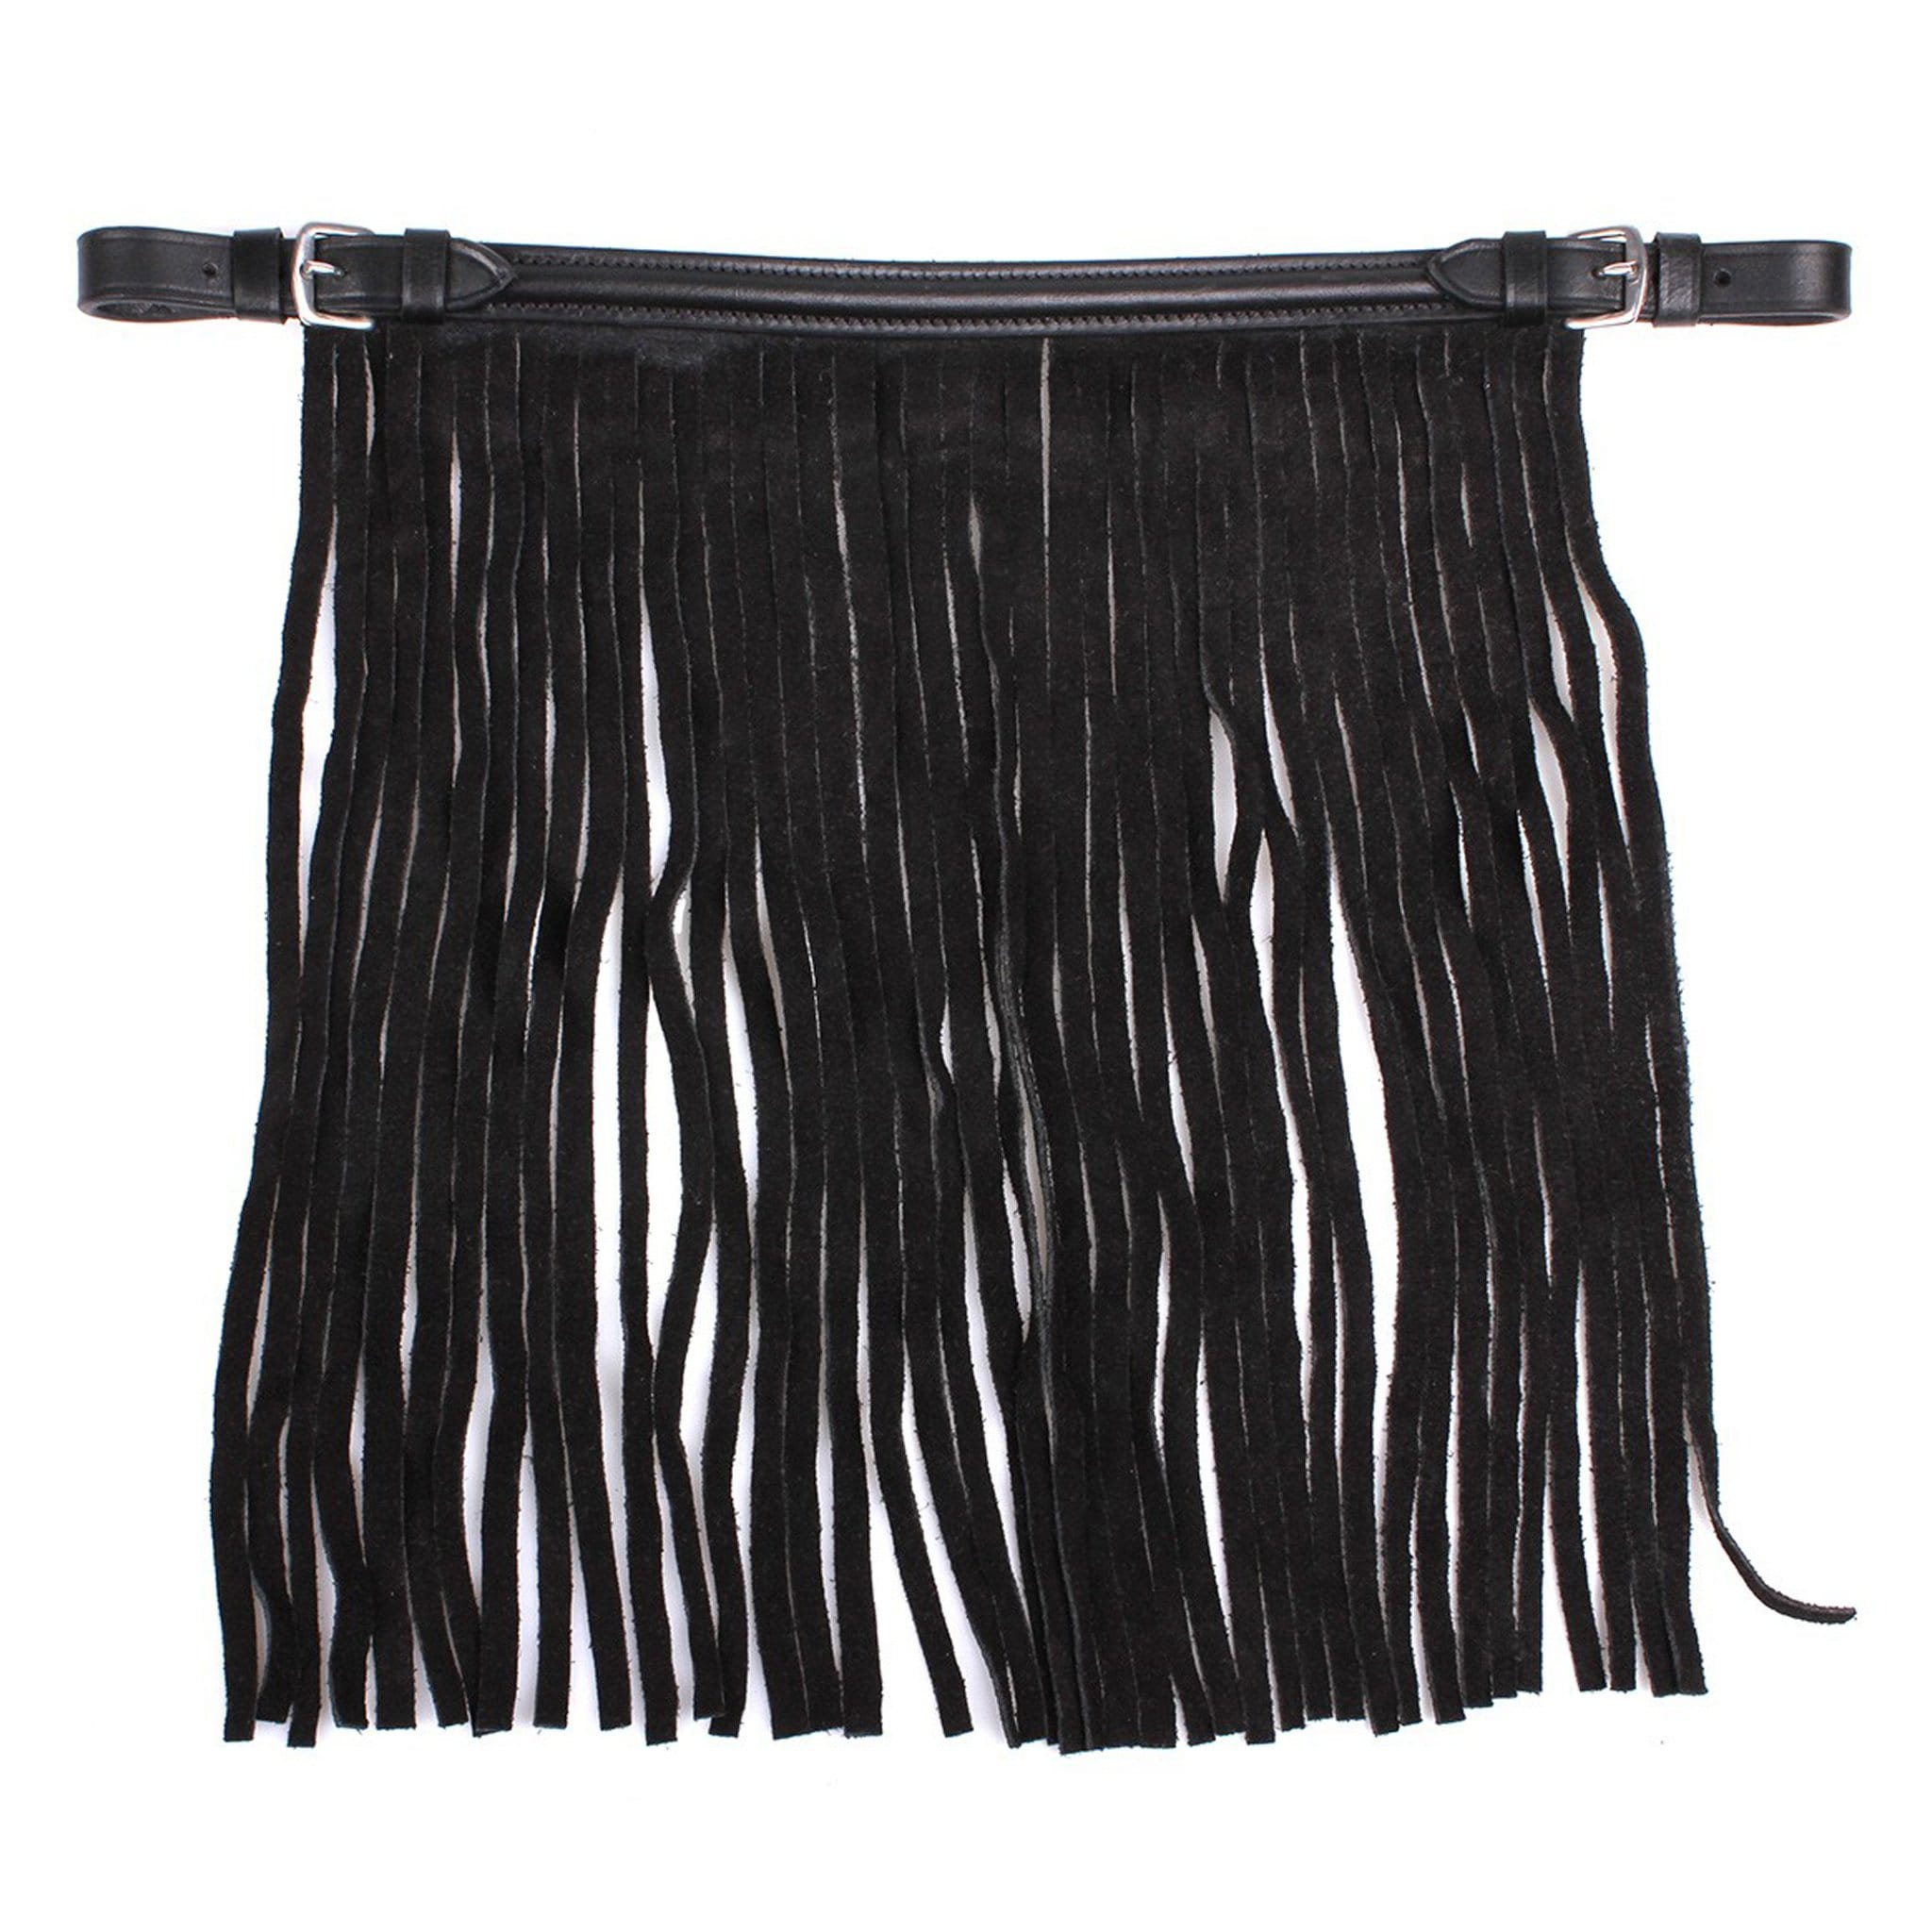 QHP Leather Fly Fringe 5228 Black Outside